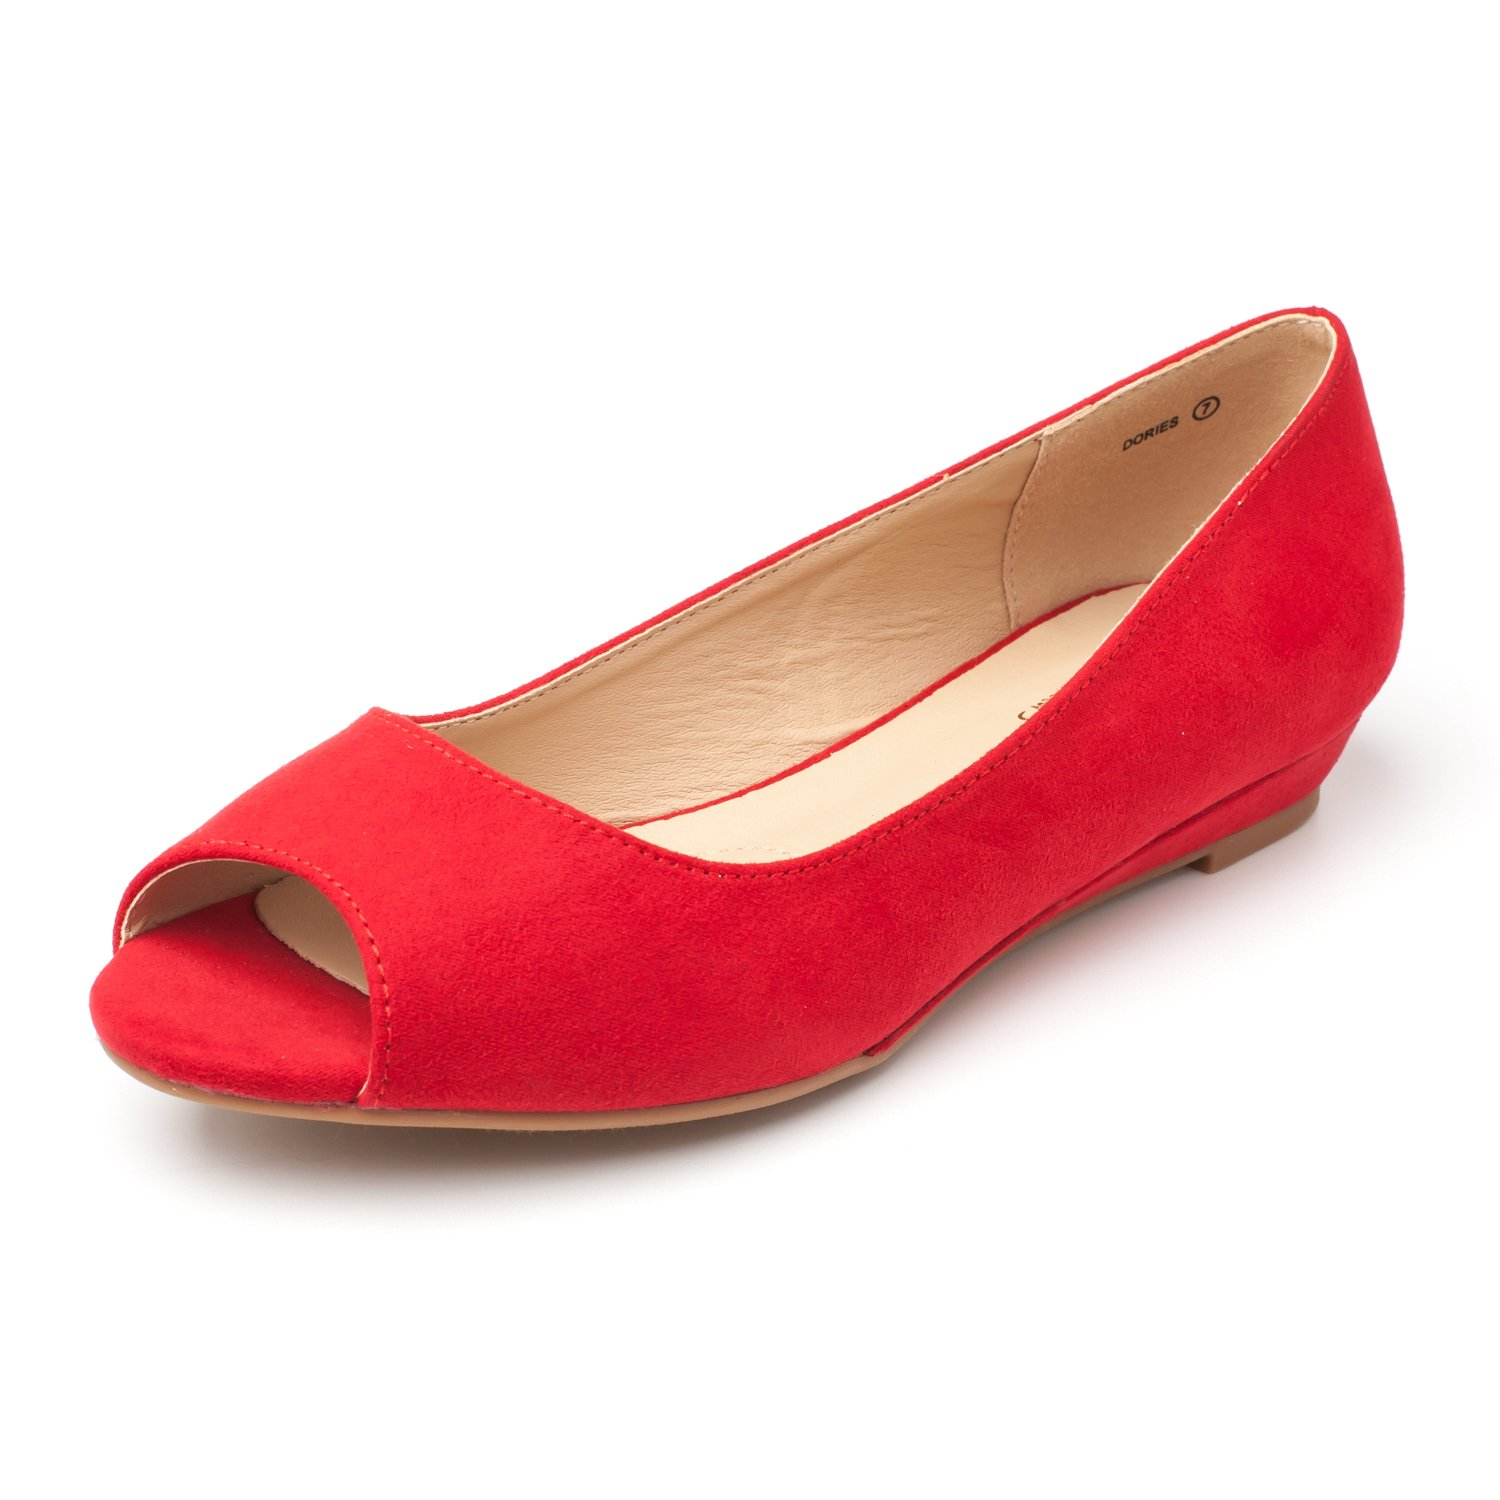 DREAM PAIRS Women's Dories Red Suede Low Wedge Peep Toe Flats Shoes Size 8 M US